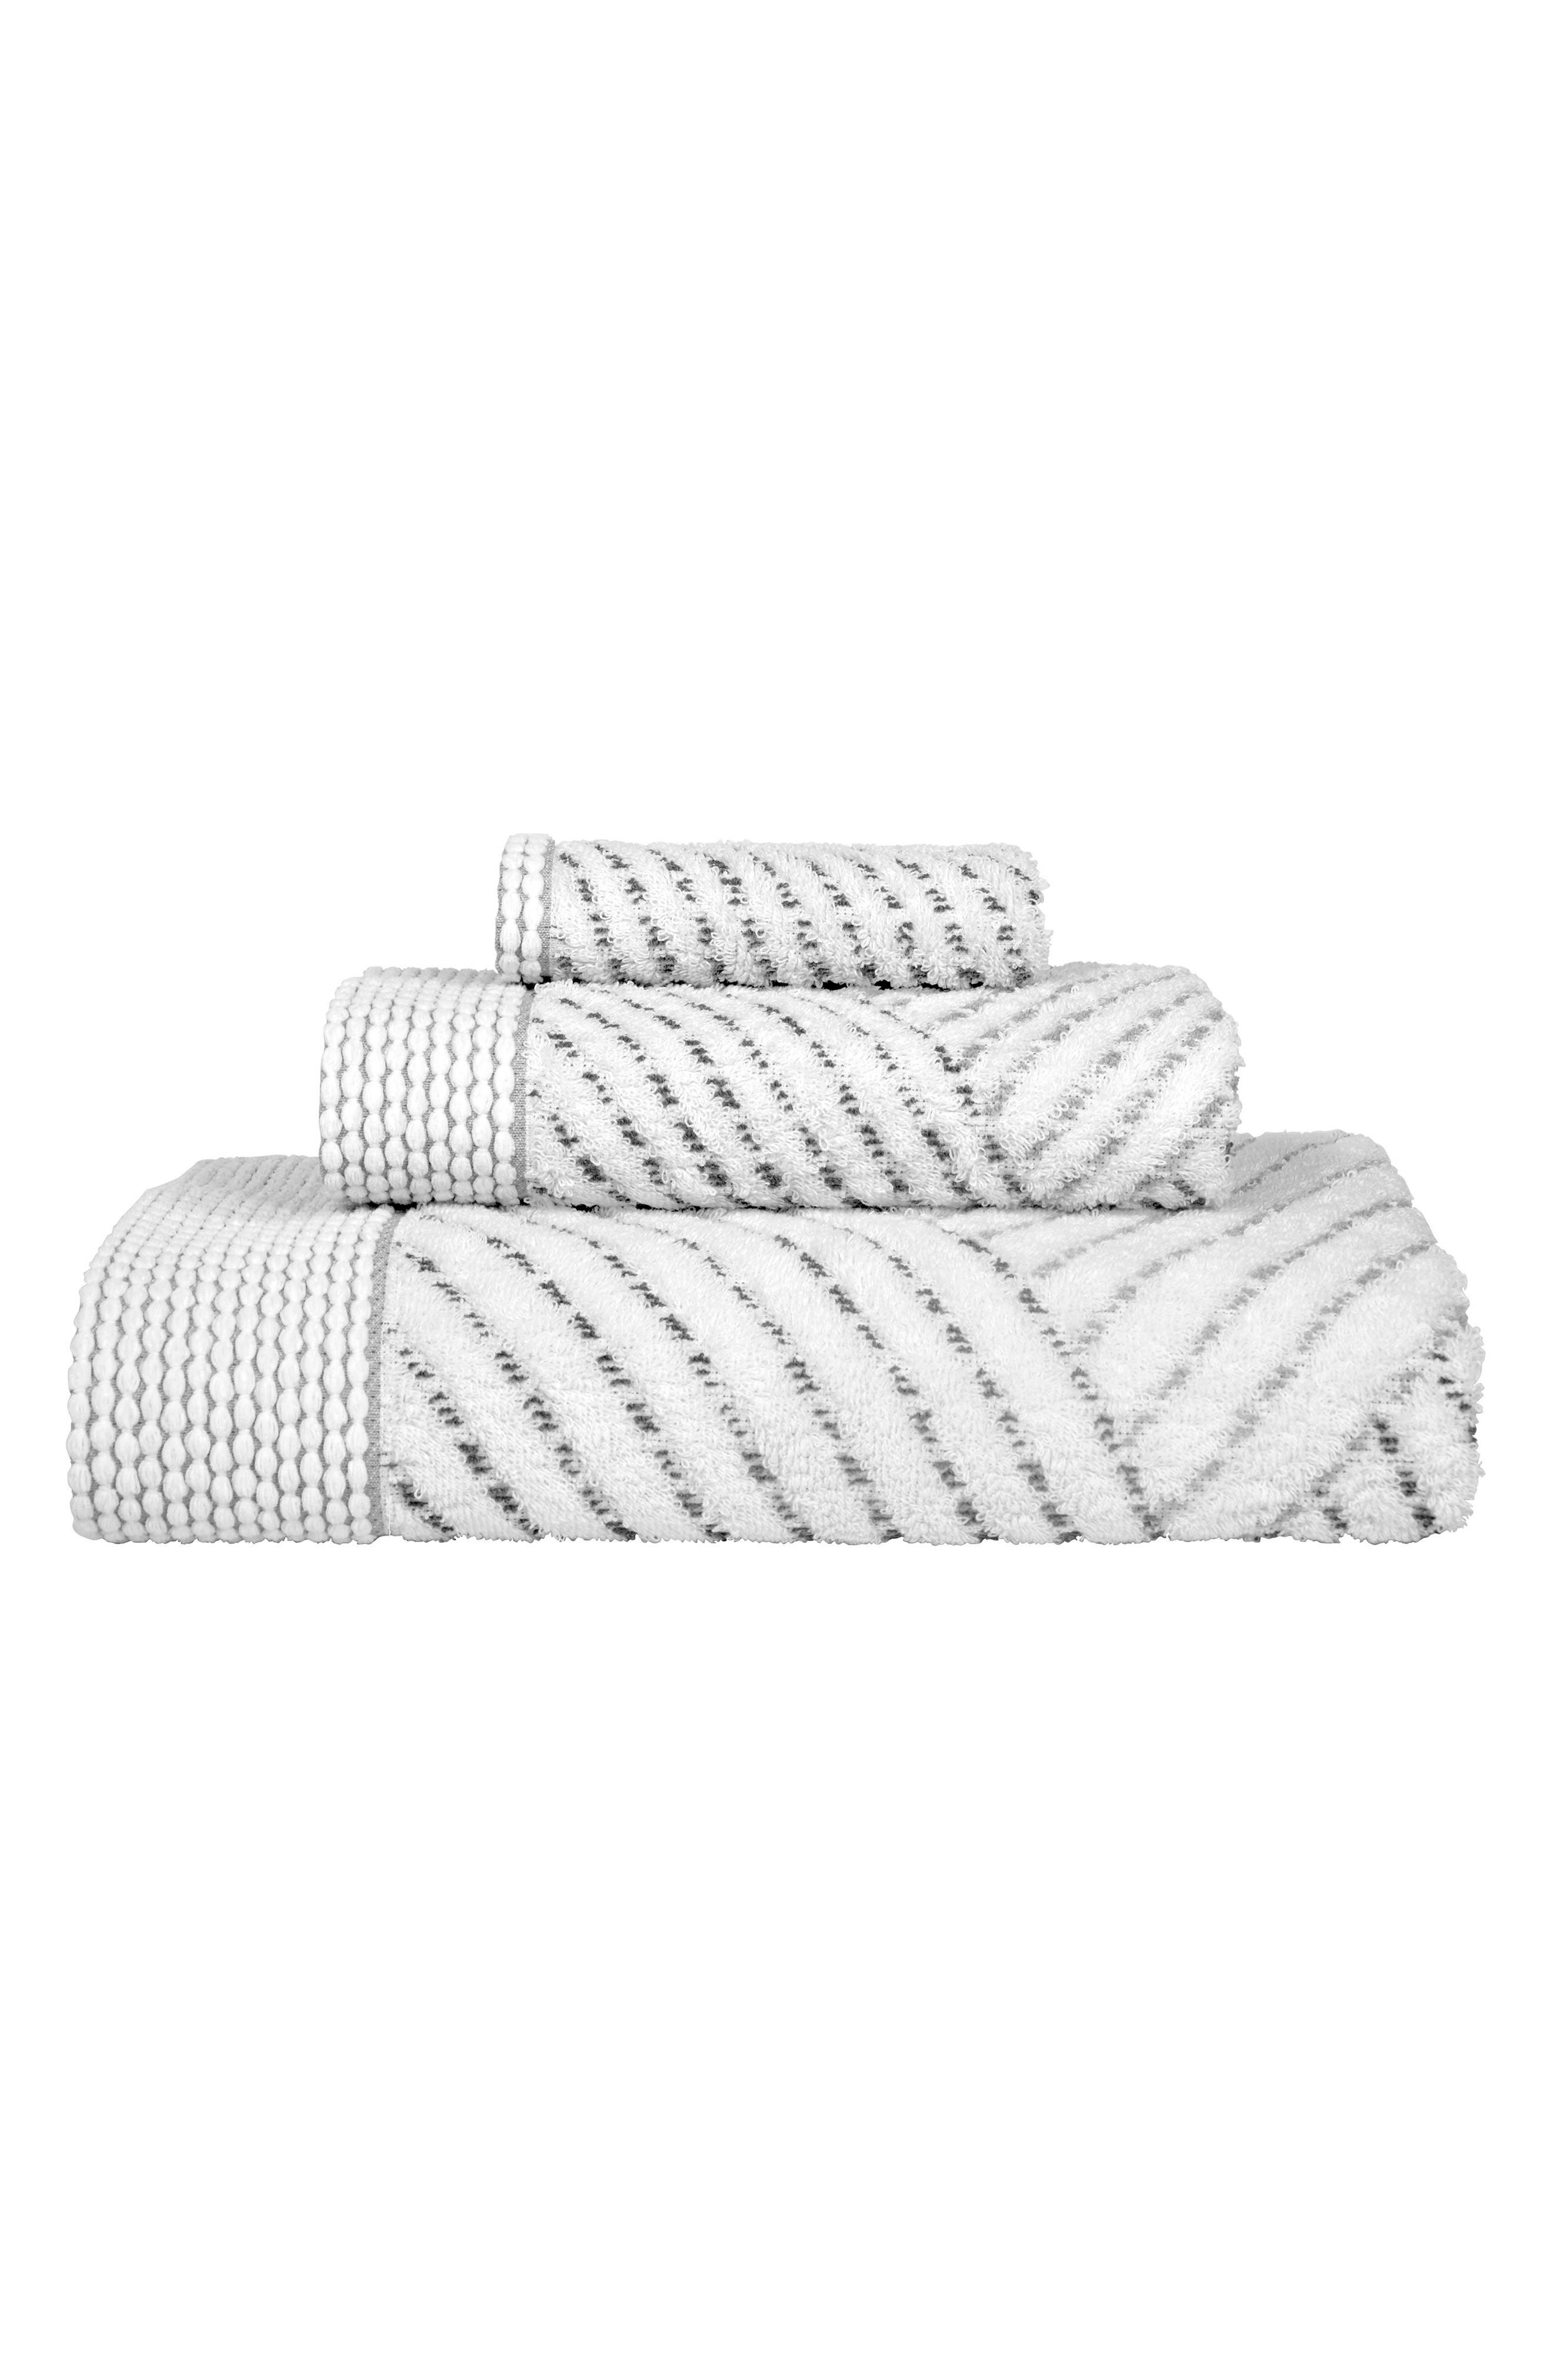 Sazid Hand Towel,                         Main,                         color, 020